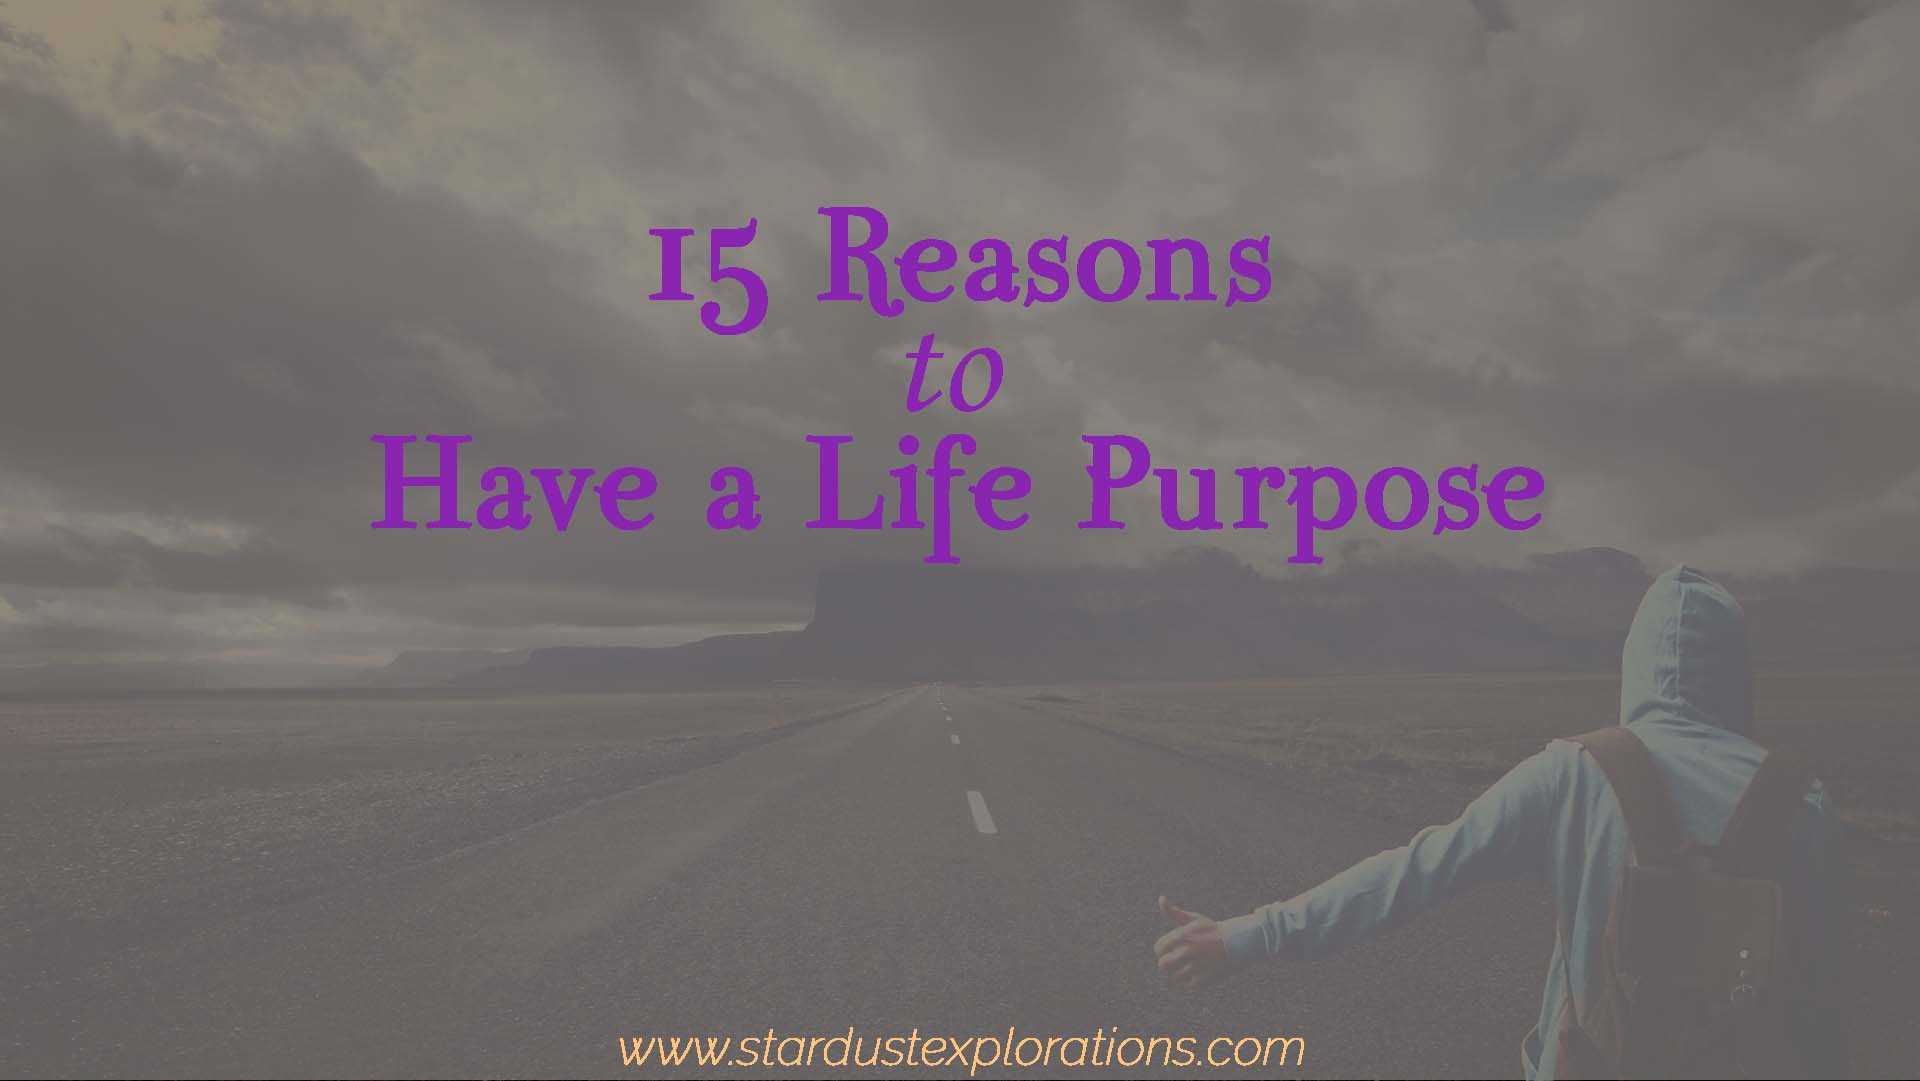 life-purpose-15-reasons-1